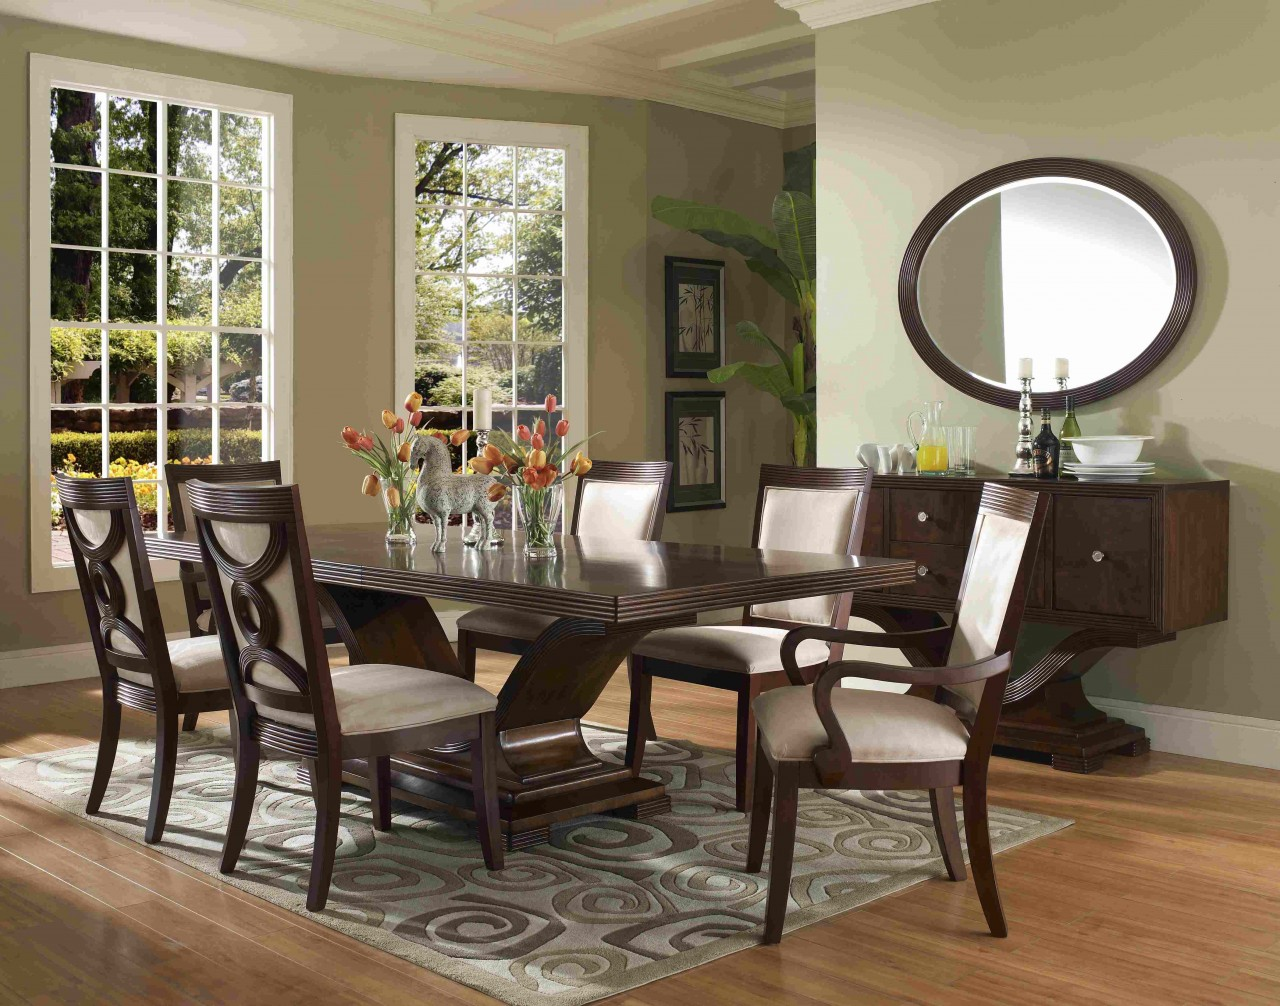 Perfect formal dining room sets for 8 homesfeed for Formal dining room furniture